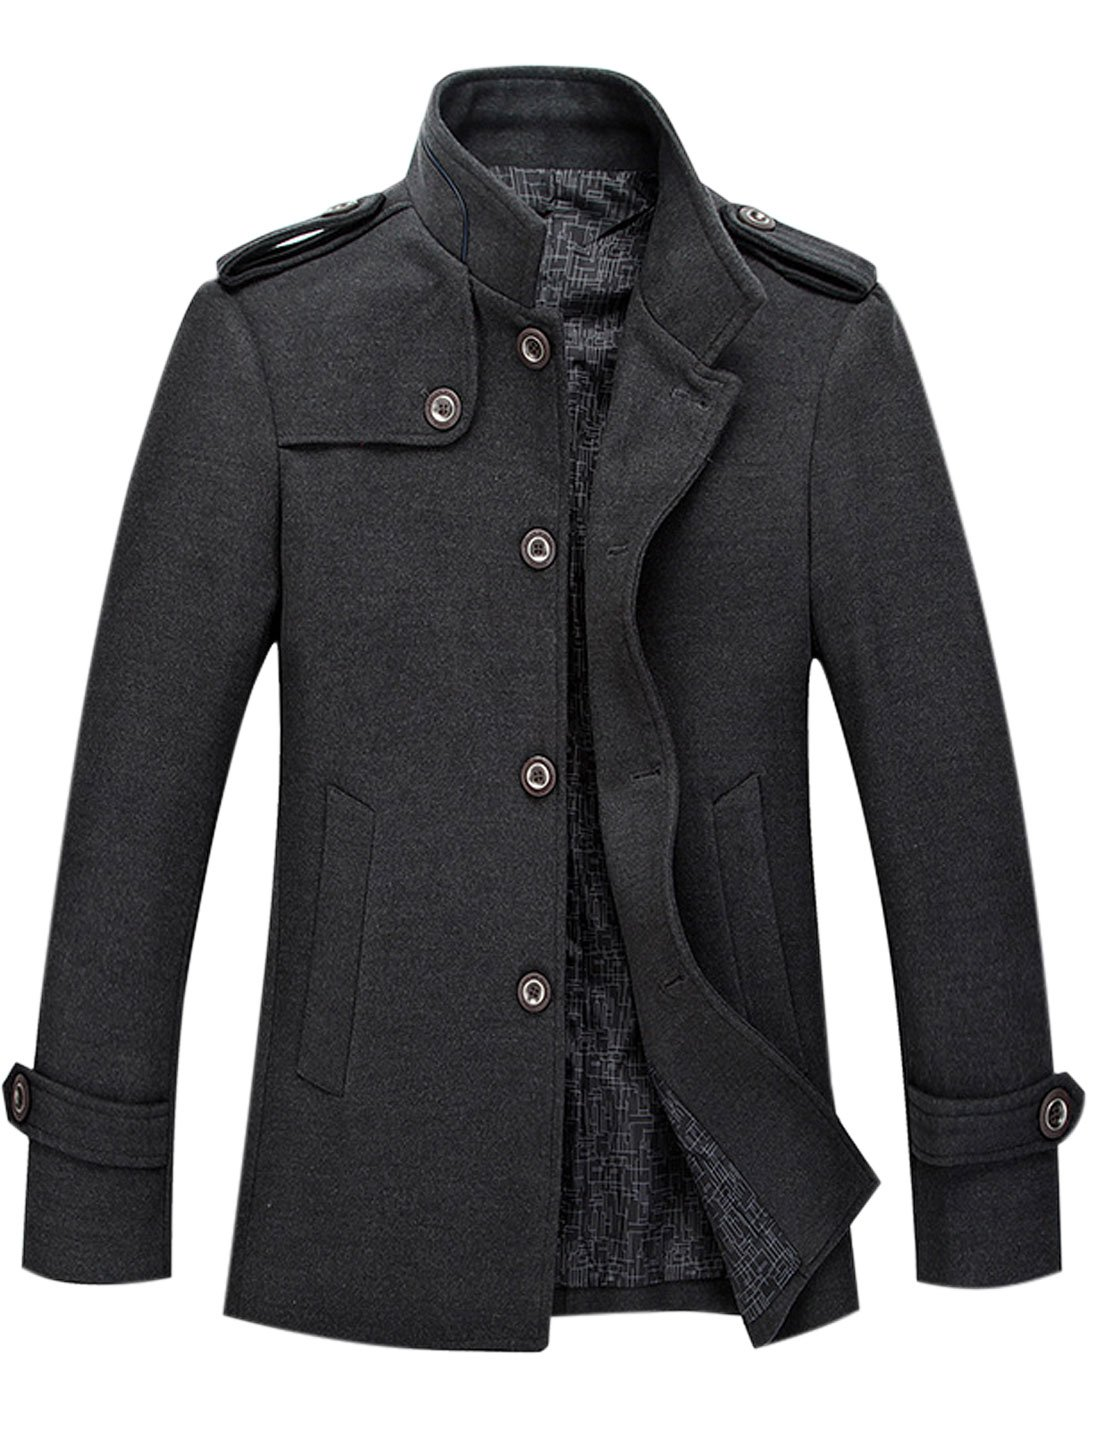 Tanming Men's Stylish Single Breasted Wool Blend Pea Coat Mutiple Colors (Small, Grey) by Tanming